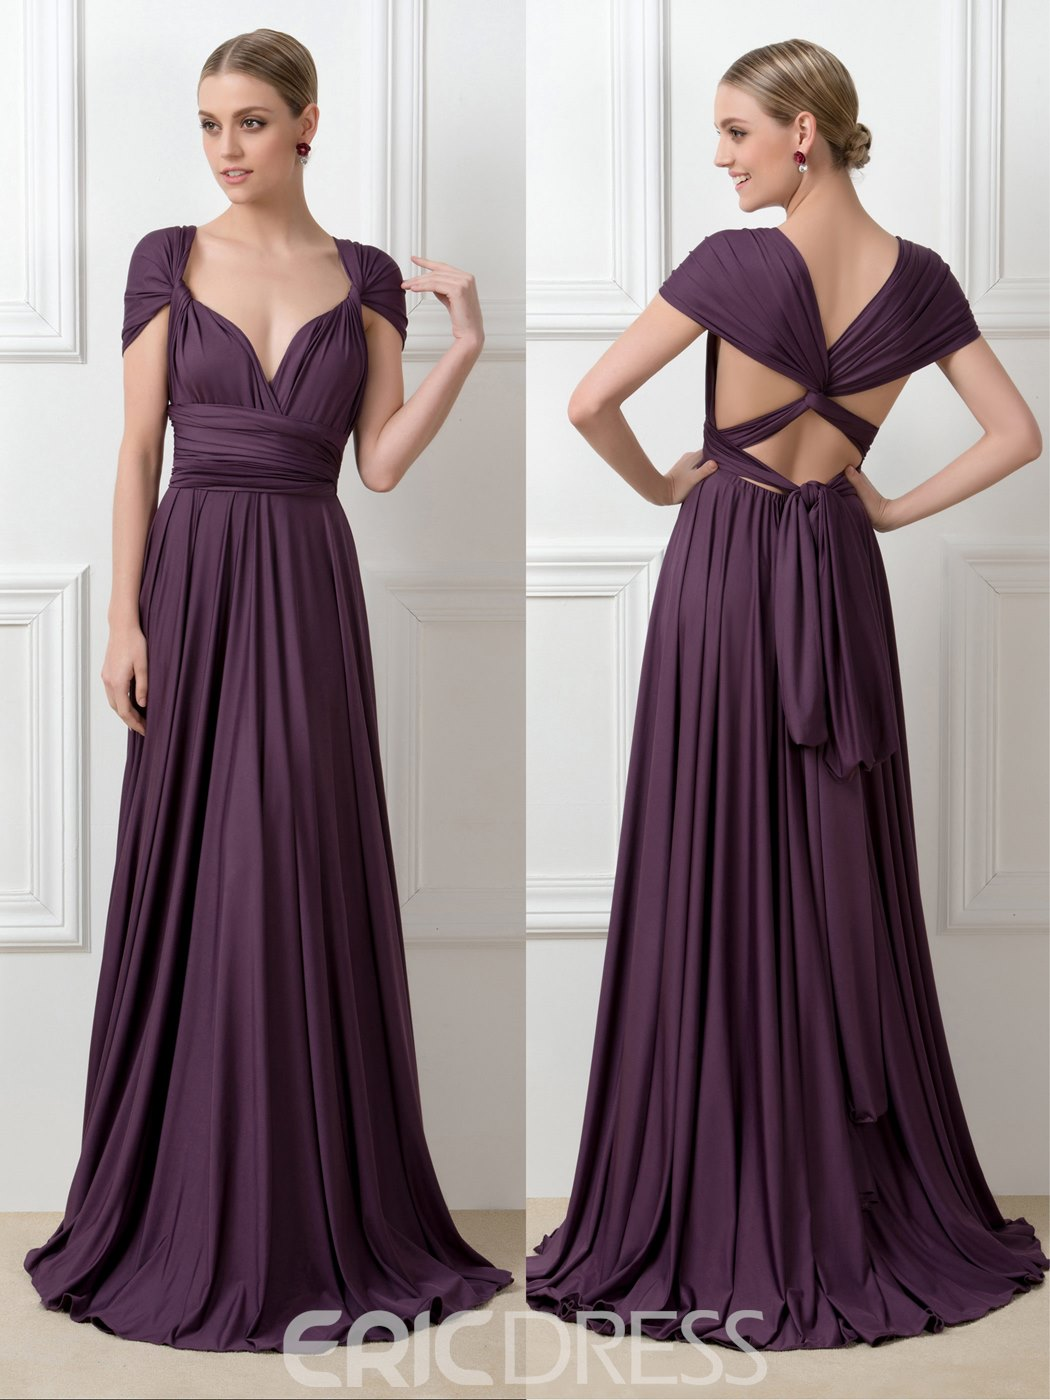 Ericdress Fancy Convertible Long Bridesmaid Dress